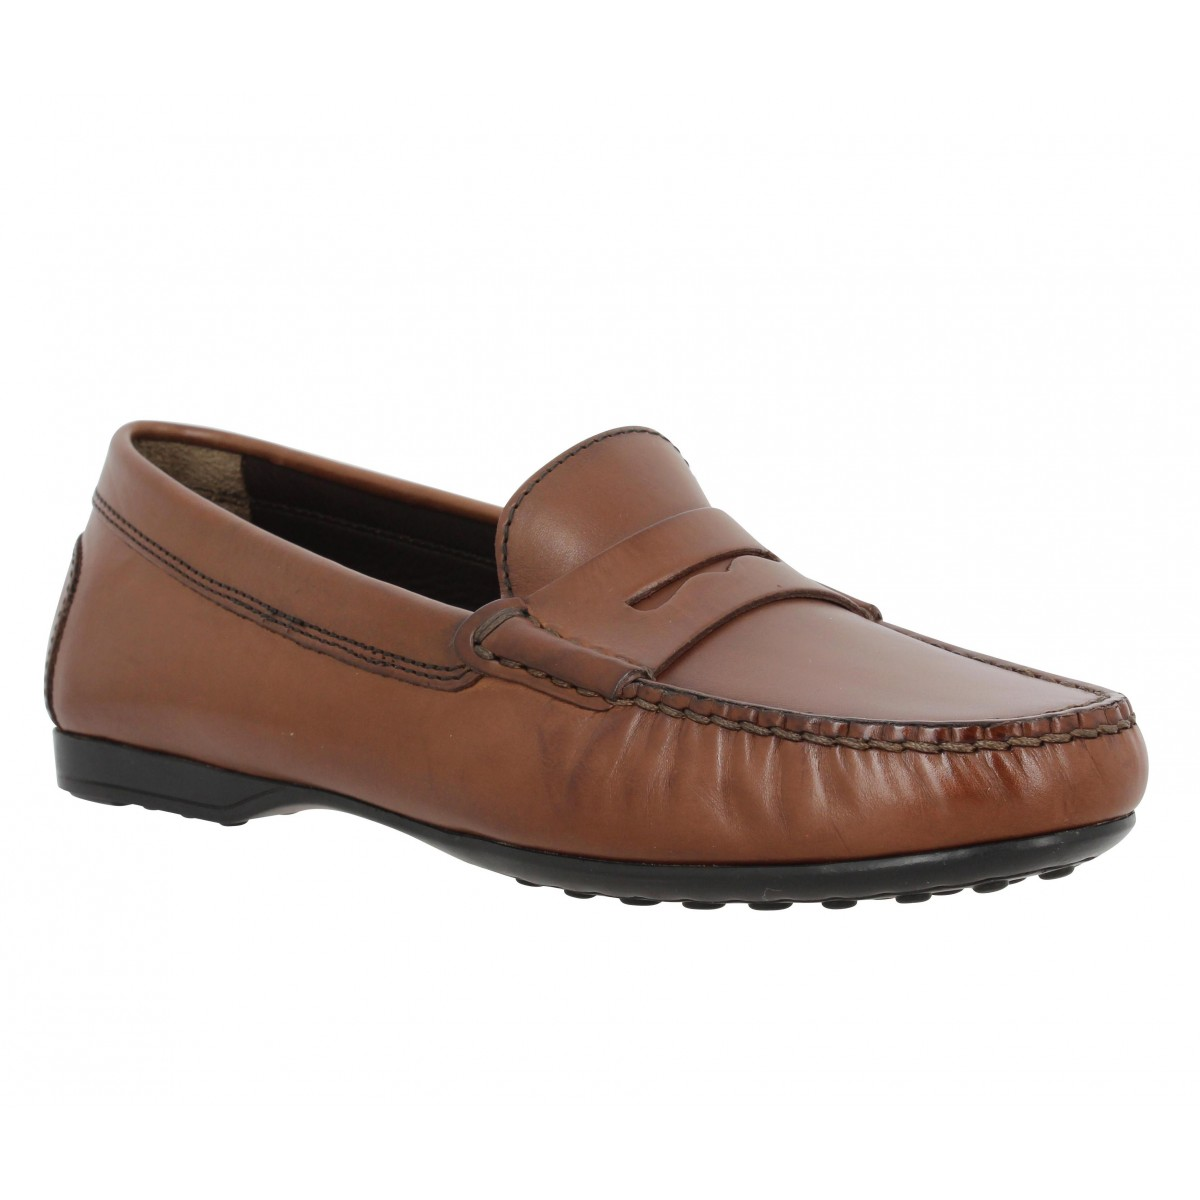 Mocassins TRIVER FLIGHT 646 01 cuir Femme Marron